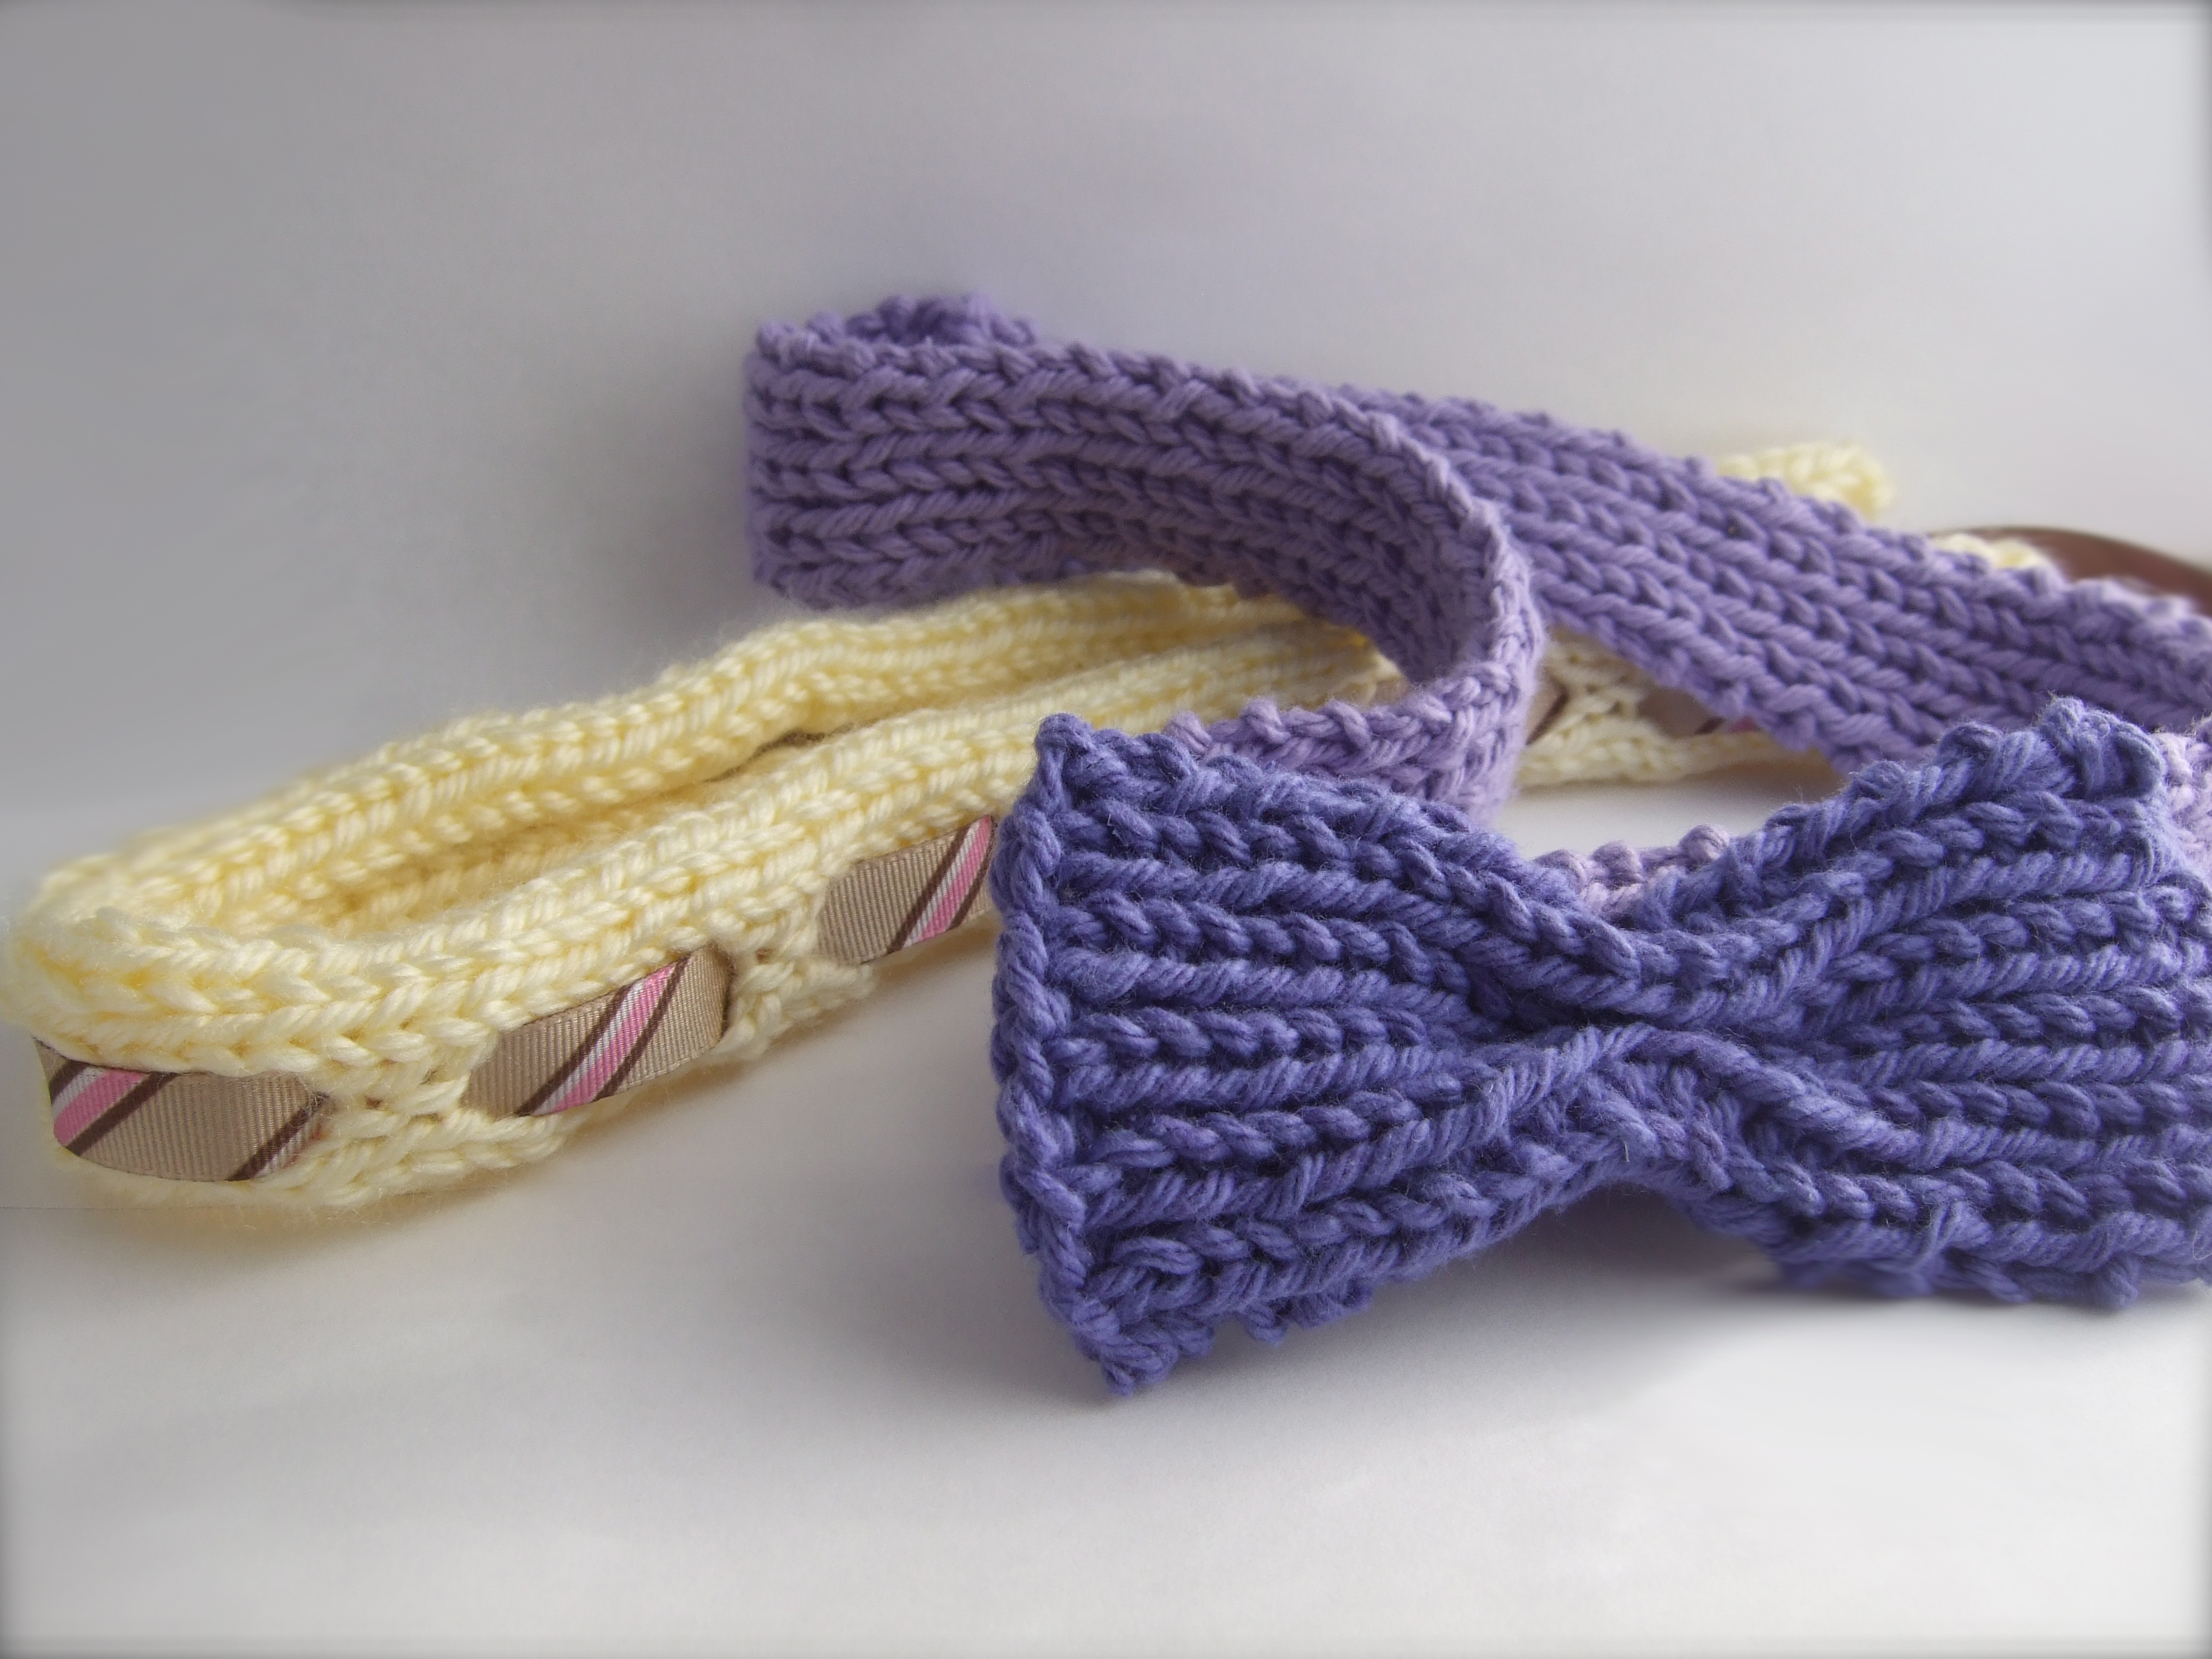 2 knit headbands- yellow and purple